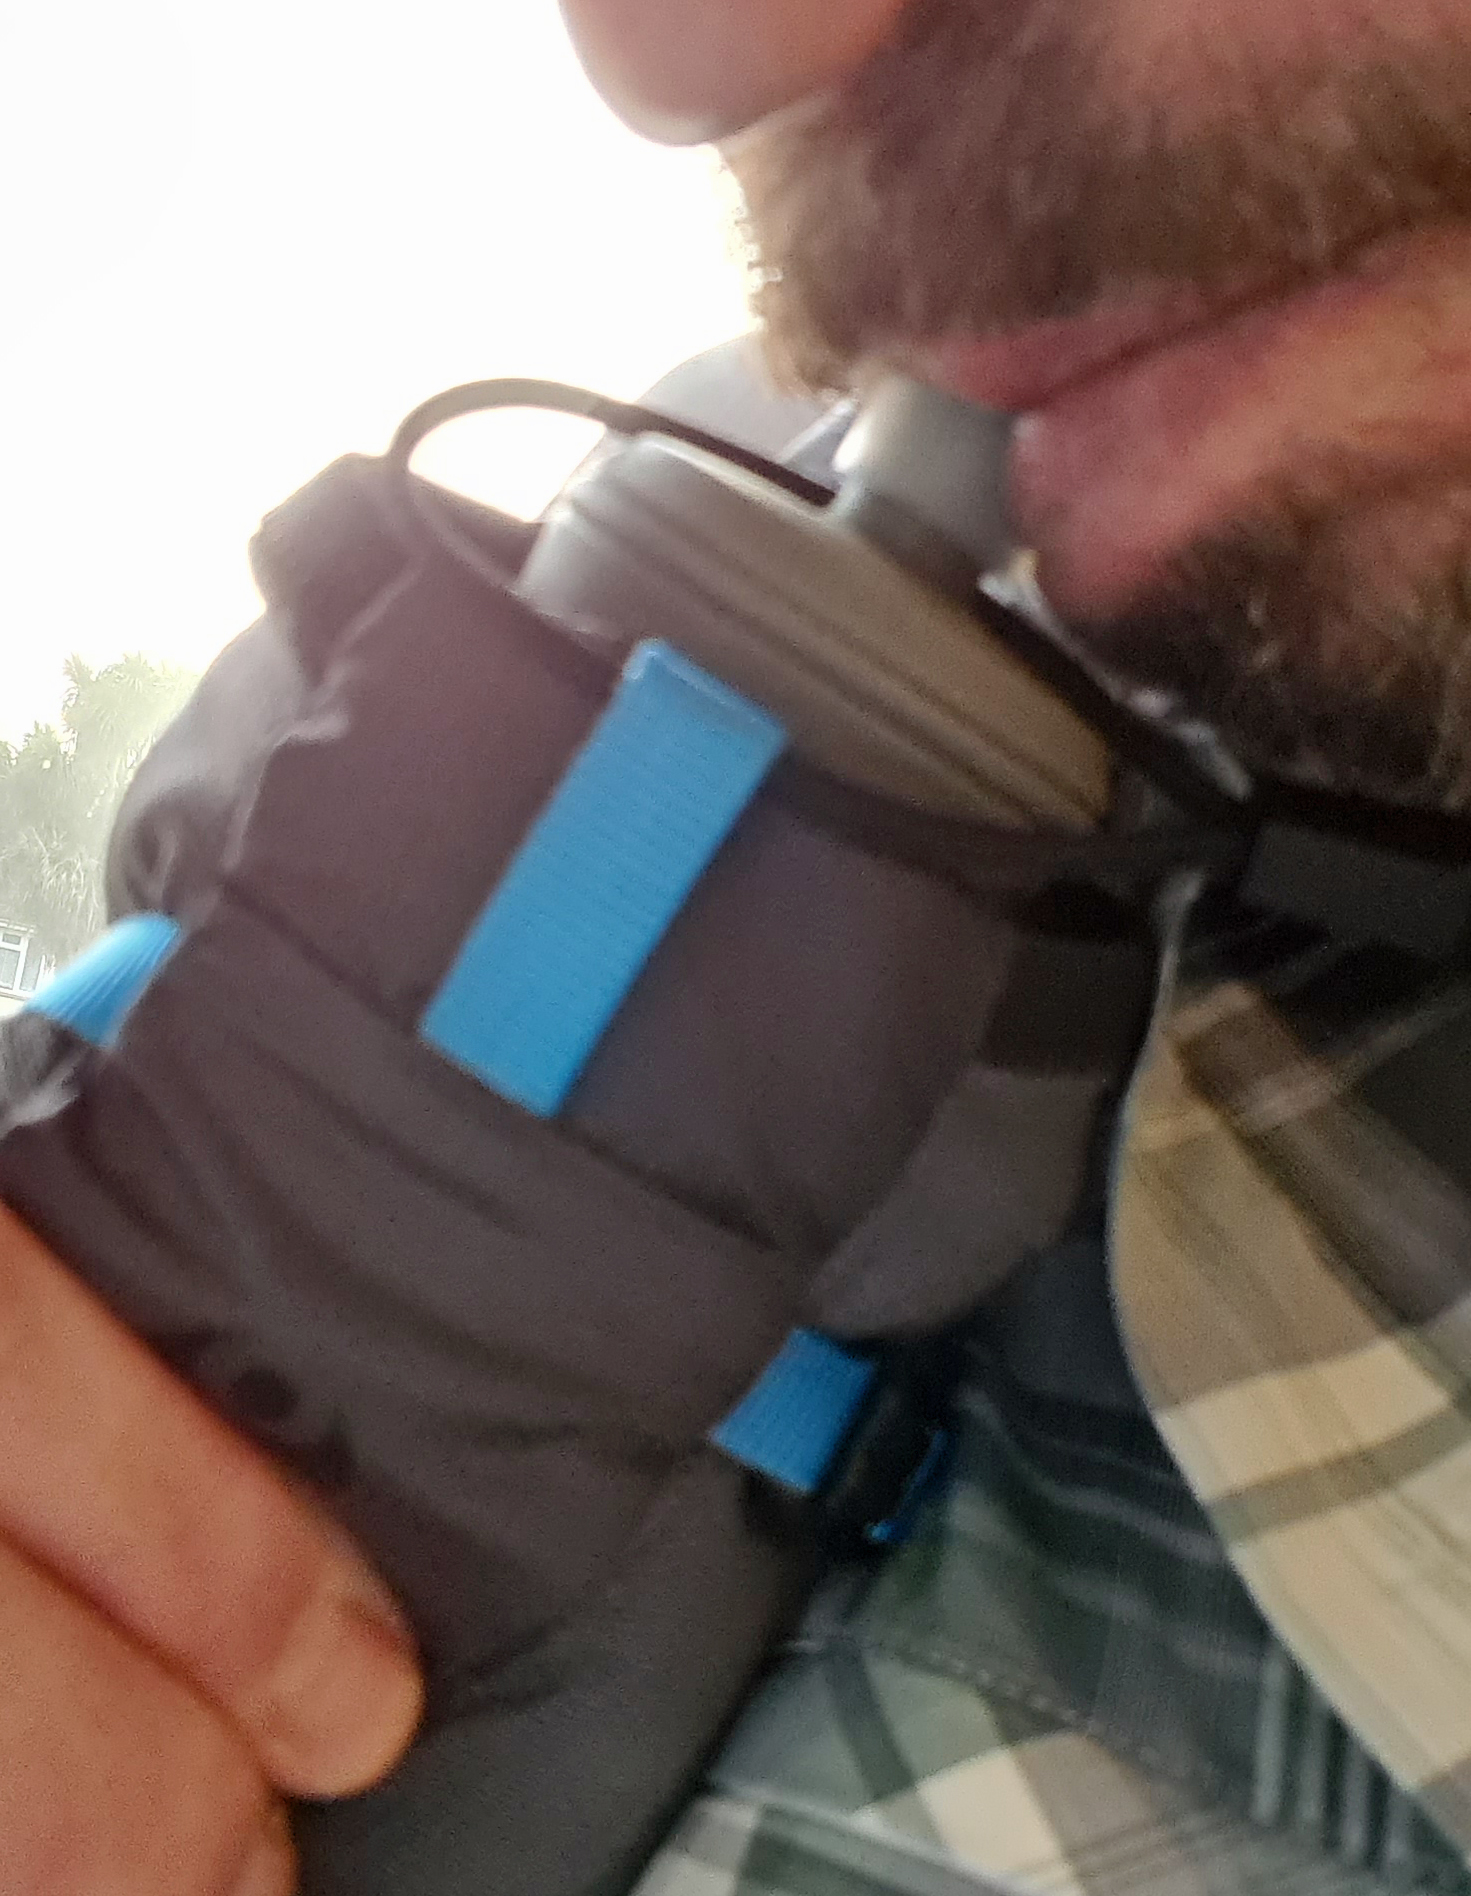 a squeeze and easy drinking from collapsible flask